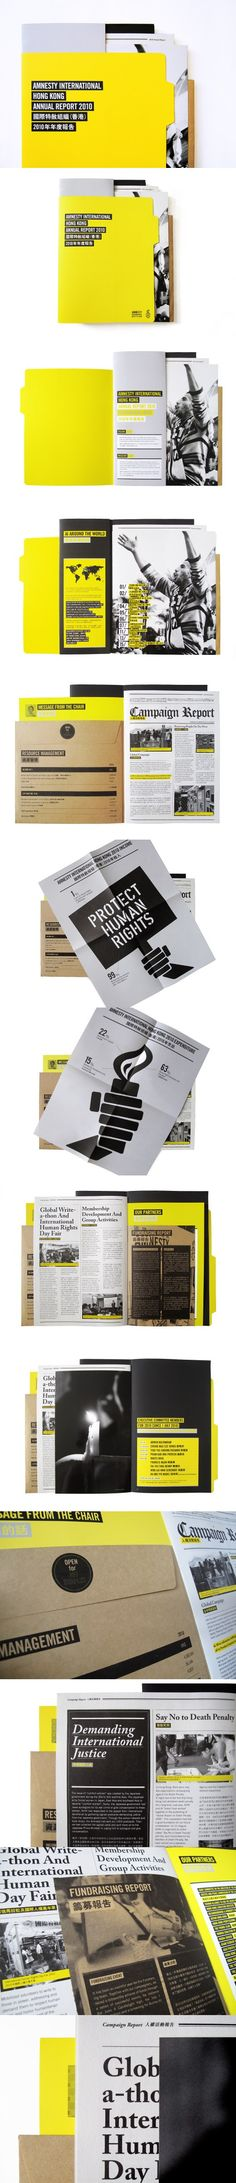 Amnesty International Hong Kong Annual Report 2010 on Behance - created on Web Design, Layout Design, Graphic Design Layouts, Print Layout, Graphic Design Print, Graphic Design Inspiration, Book Design, Design Ideas, Shape Design